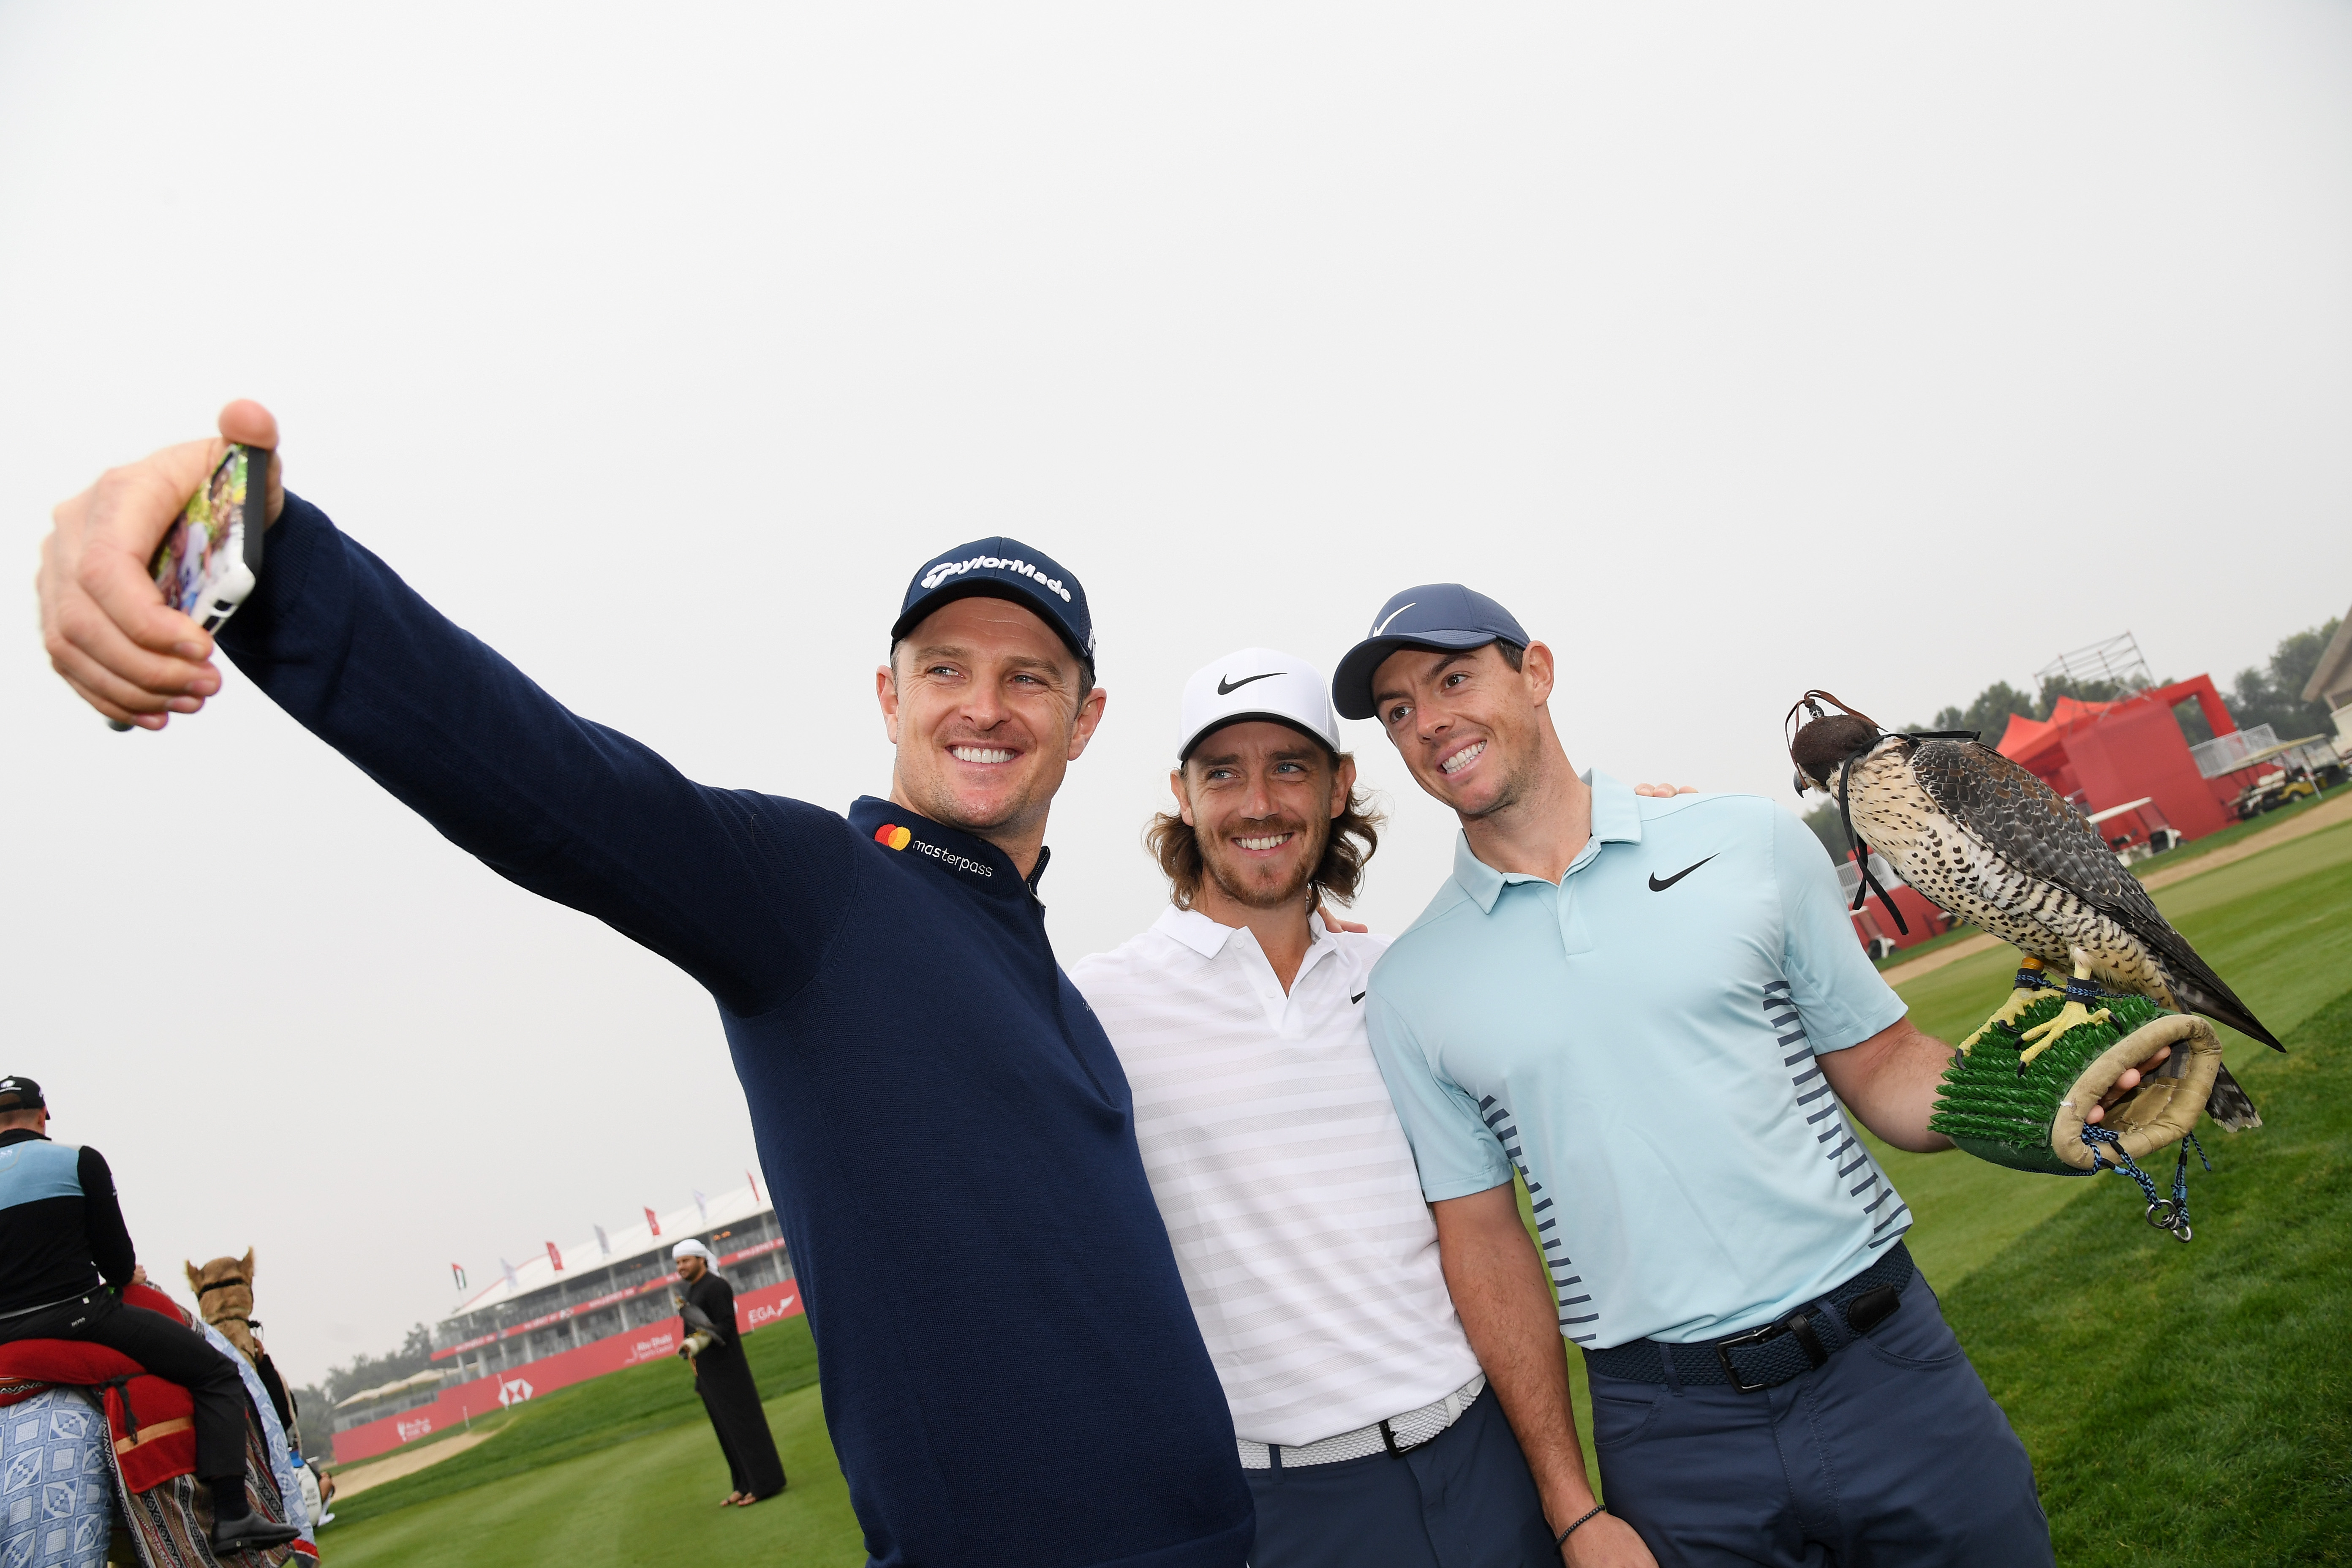 Only 2% of golf fans can identify the world's current top 100 players